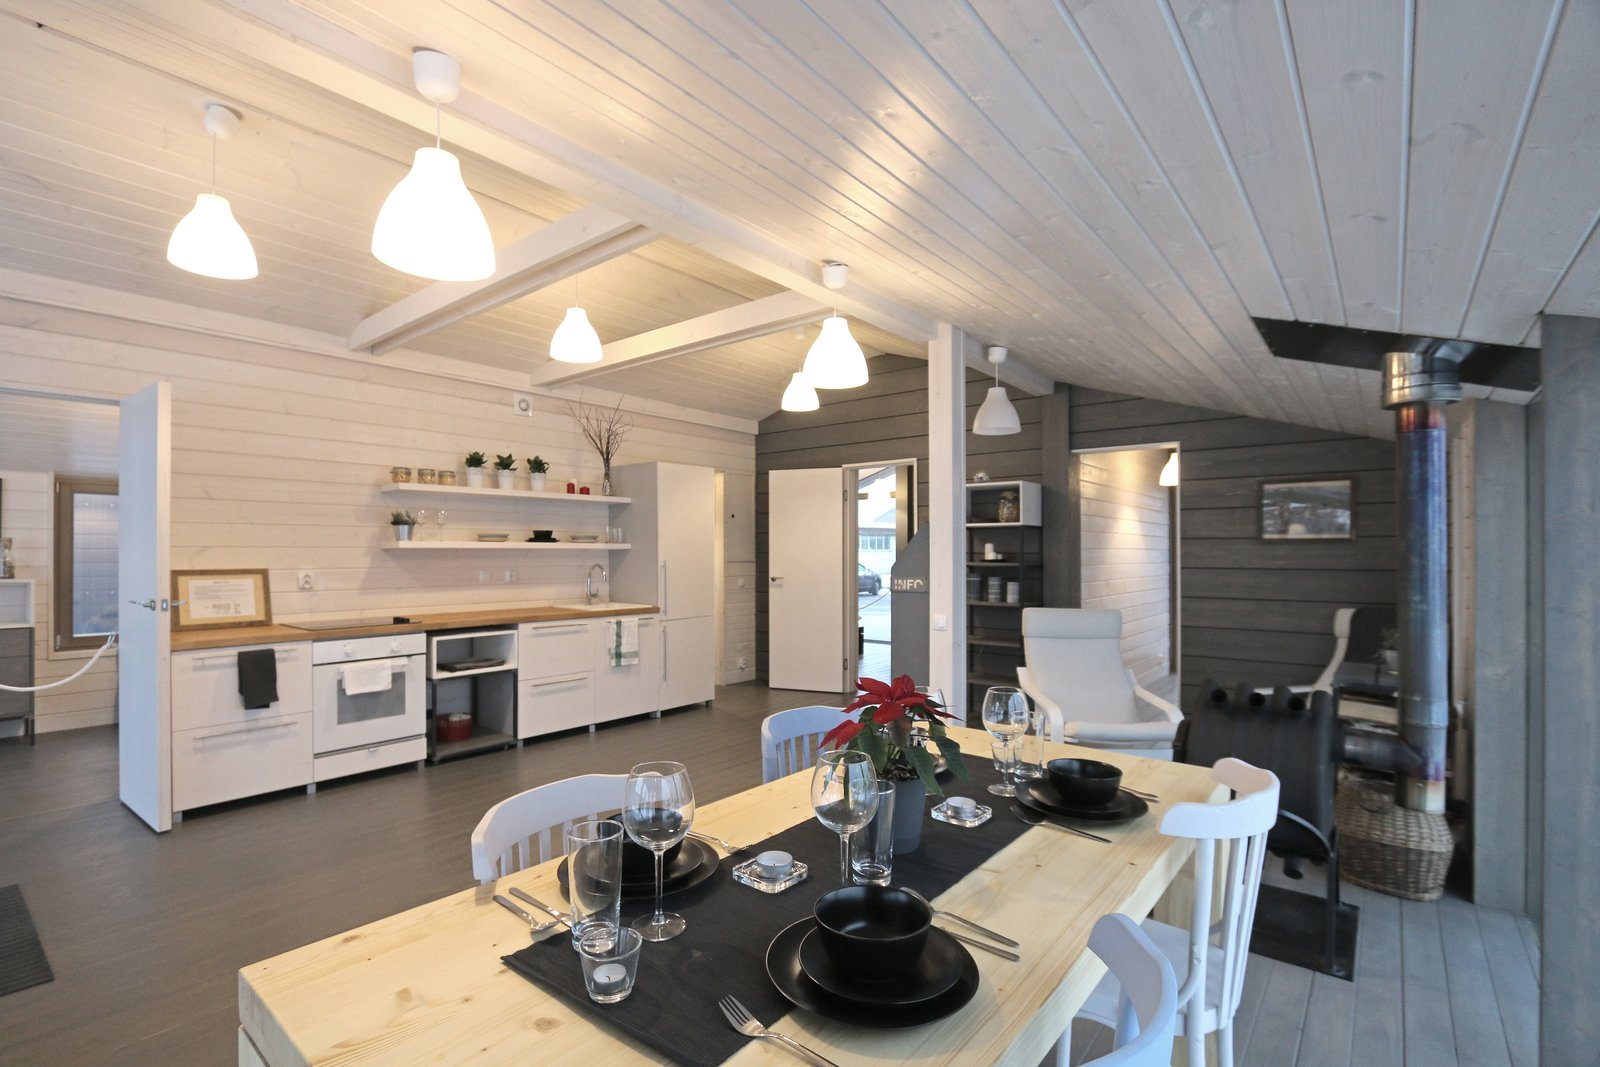 Dining Room, Ceiling Lighting, Wood Burning Fireplace, Chair, and Table Starting at $63,922, this model has two bedrooms, insulated floors, and triple-glazed windows.  Photo 15 of 22 in DublDom Prefab Homes Can Be Built in One Day